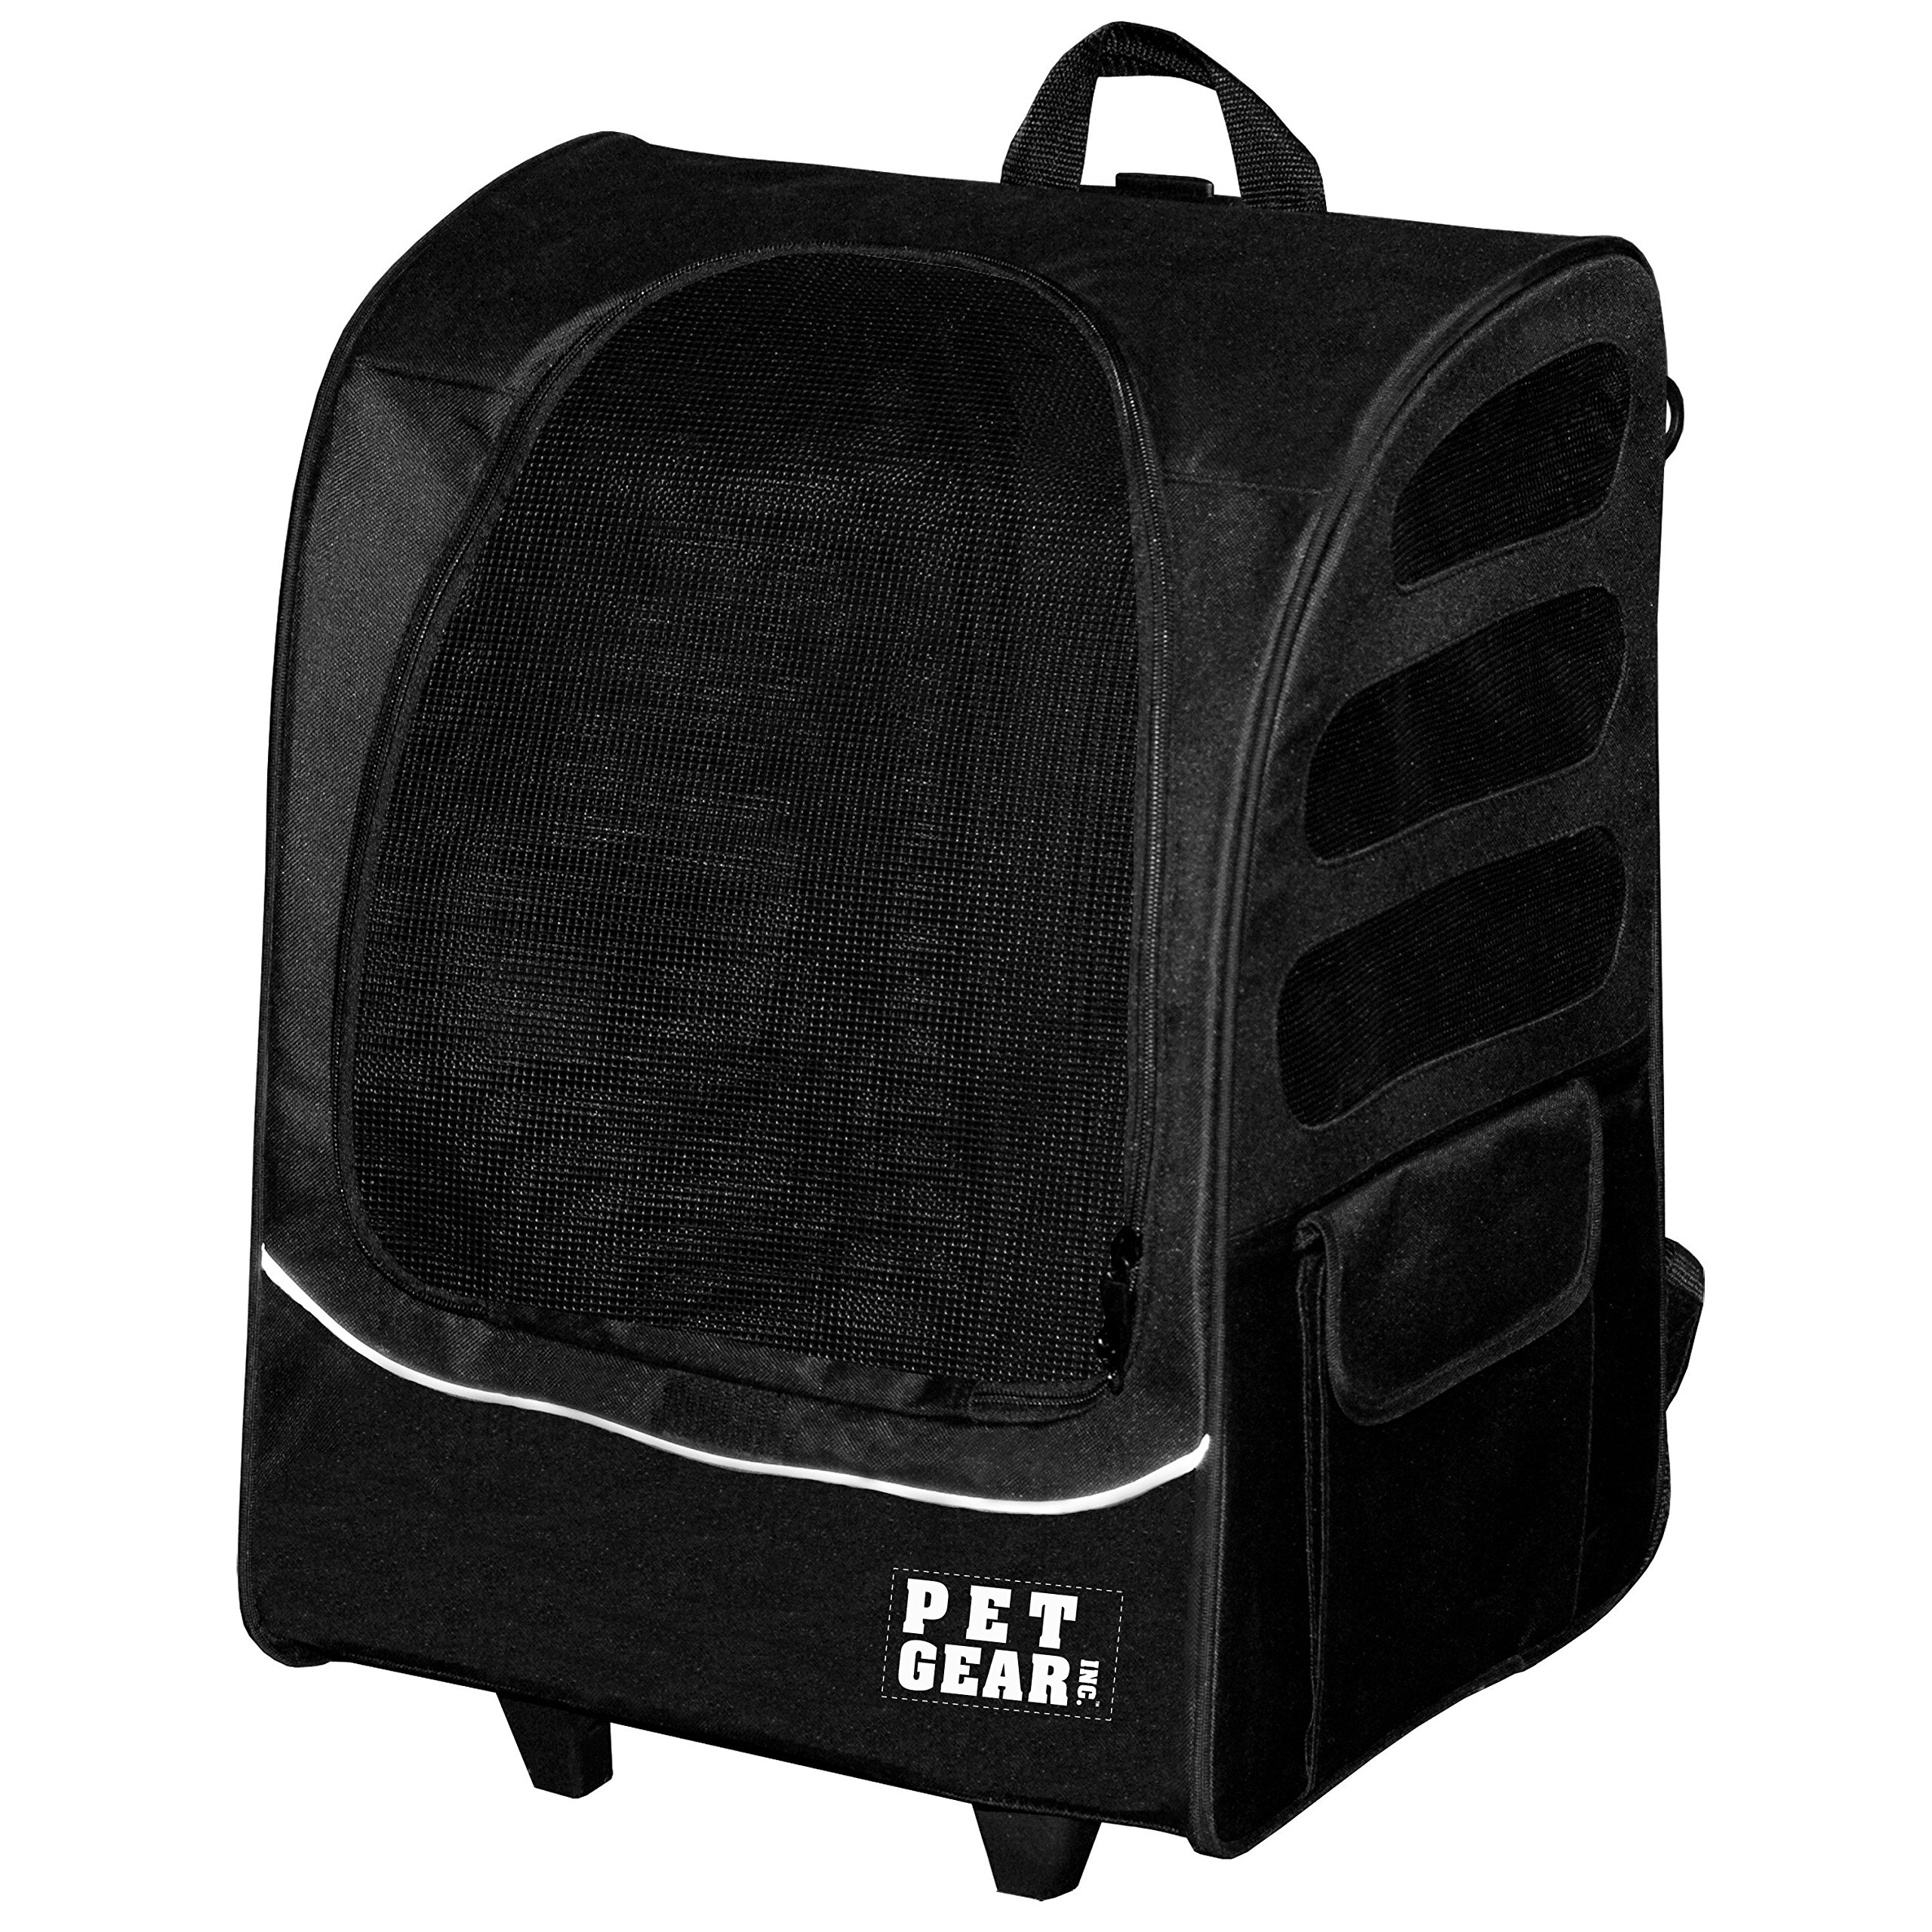 22x17.5x14 Inch Black 5-in-1 I -Go2 Traveler Plus Pet Backpack And Carrier With Wheels, Telescoping Handle Pets Upto 25 Lbs Removable Plush Pad Seat Belt Buckle Backpack Tote Or Rolling Case, Nylon